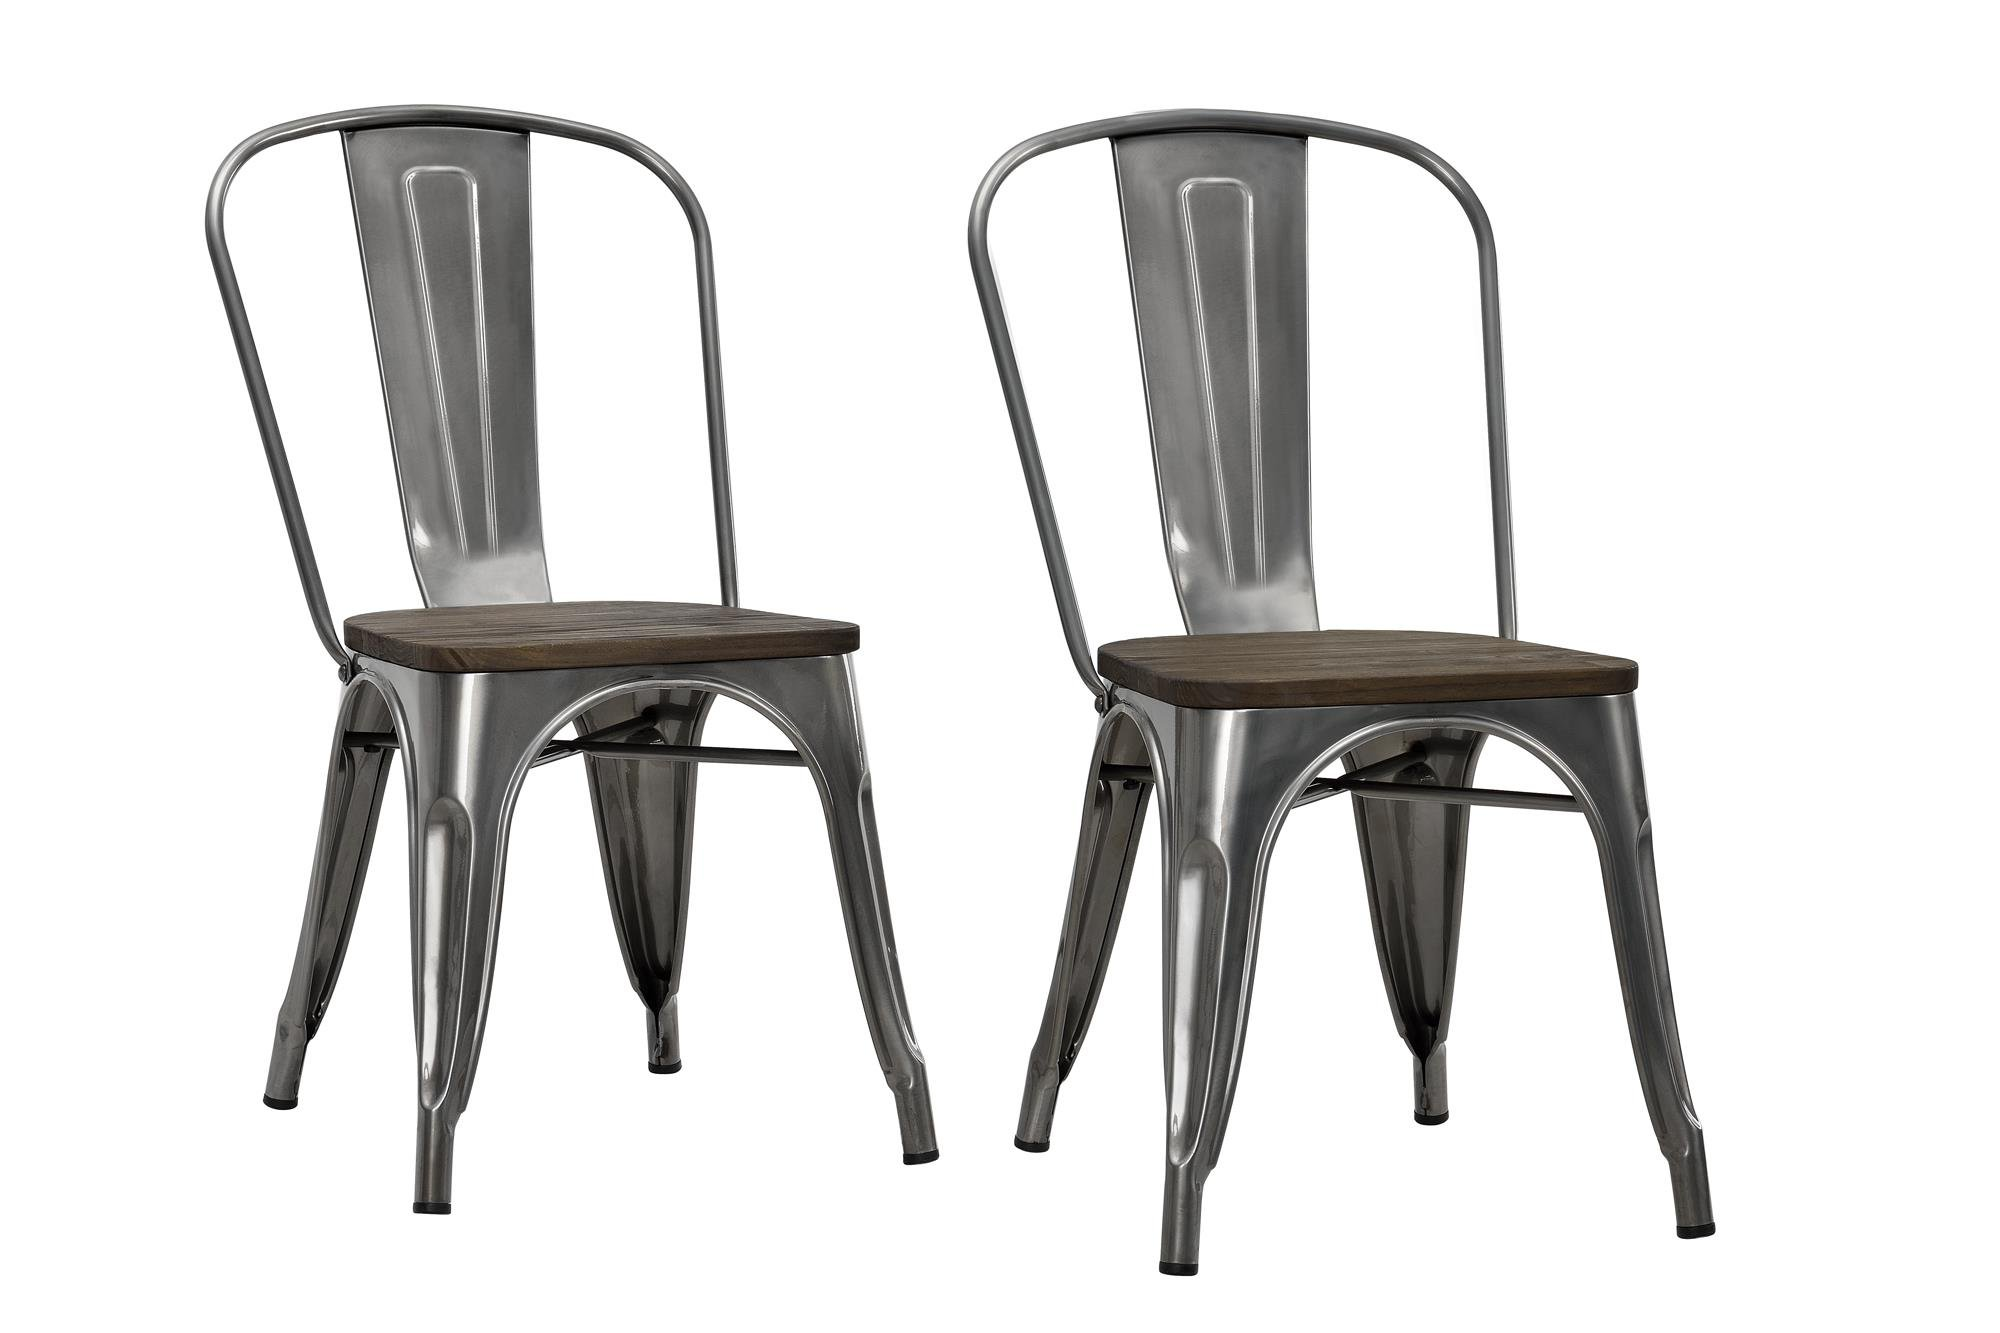 DHP Fusion Metal Dining Chair with Wood Seat, Set of two, Antique Gunmetal by DHP (Image #2)